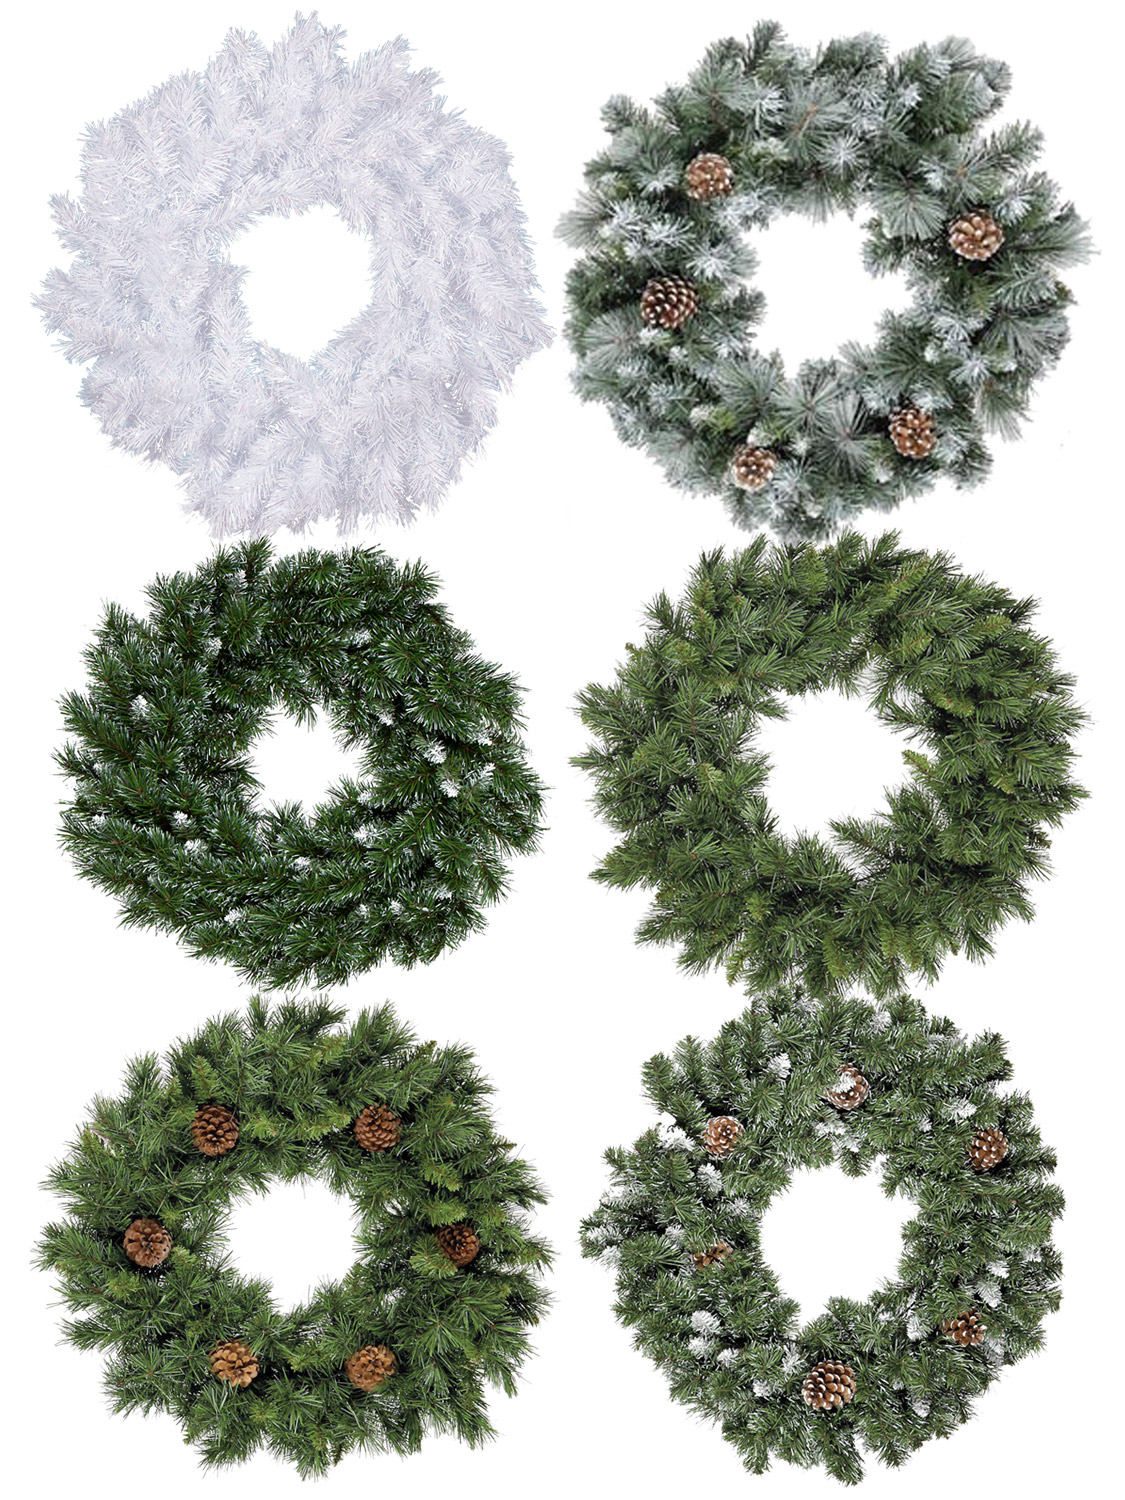 Christmas Wreaths.Details About 60cm Christmas Wreath Door Decoration Traditional Fir Green Snow Pine Cone White